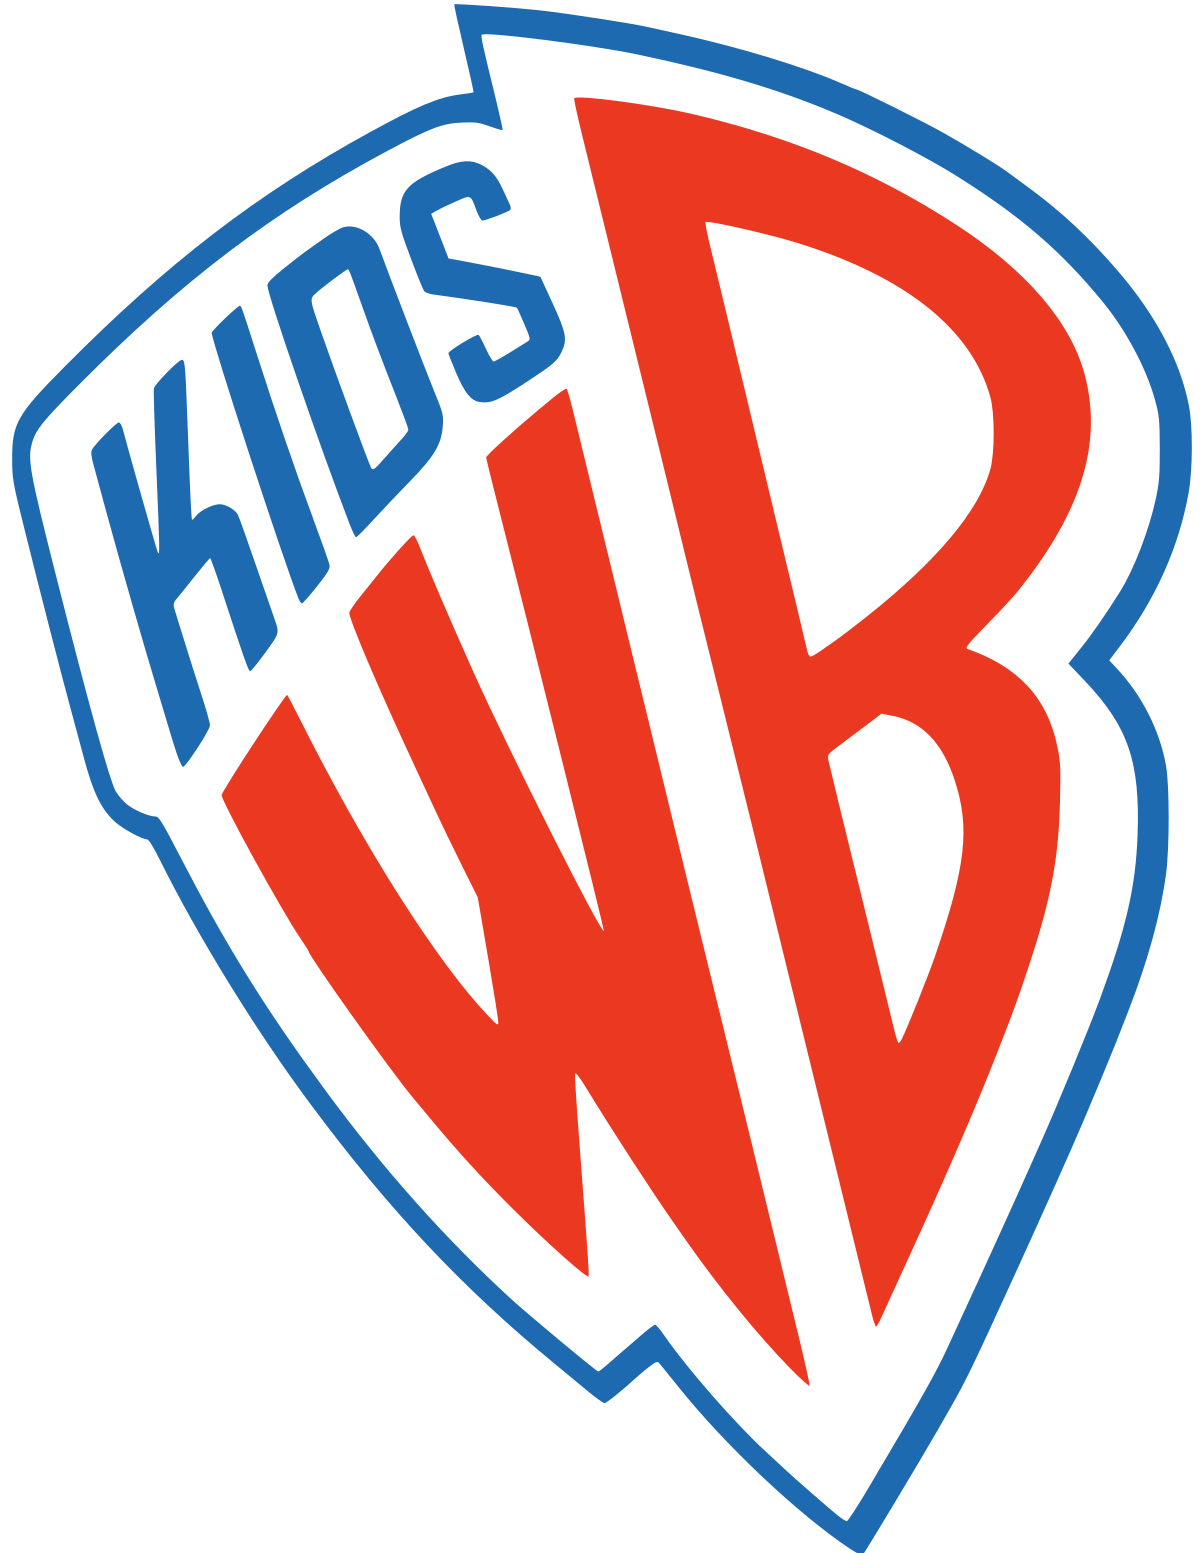 Wb clipart clipart library stock Kids wb logo clipart images gallery for free download ... clipart library stock